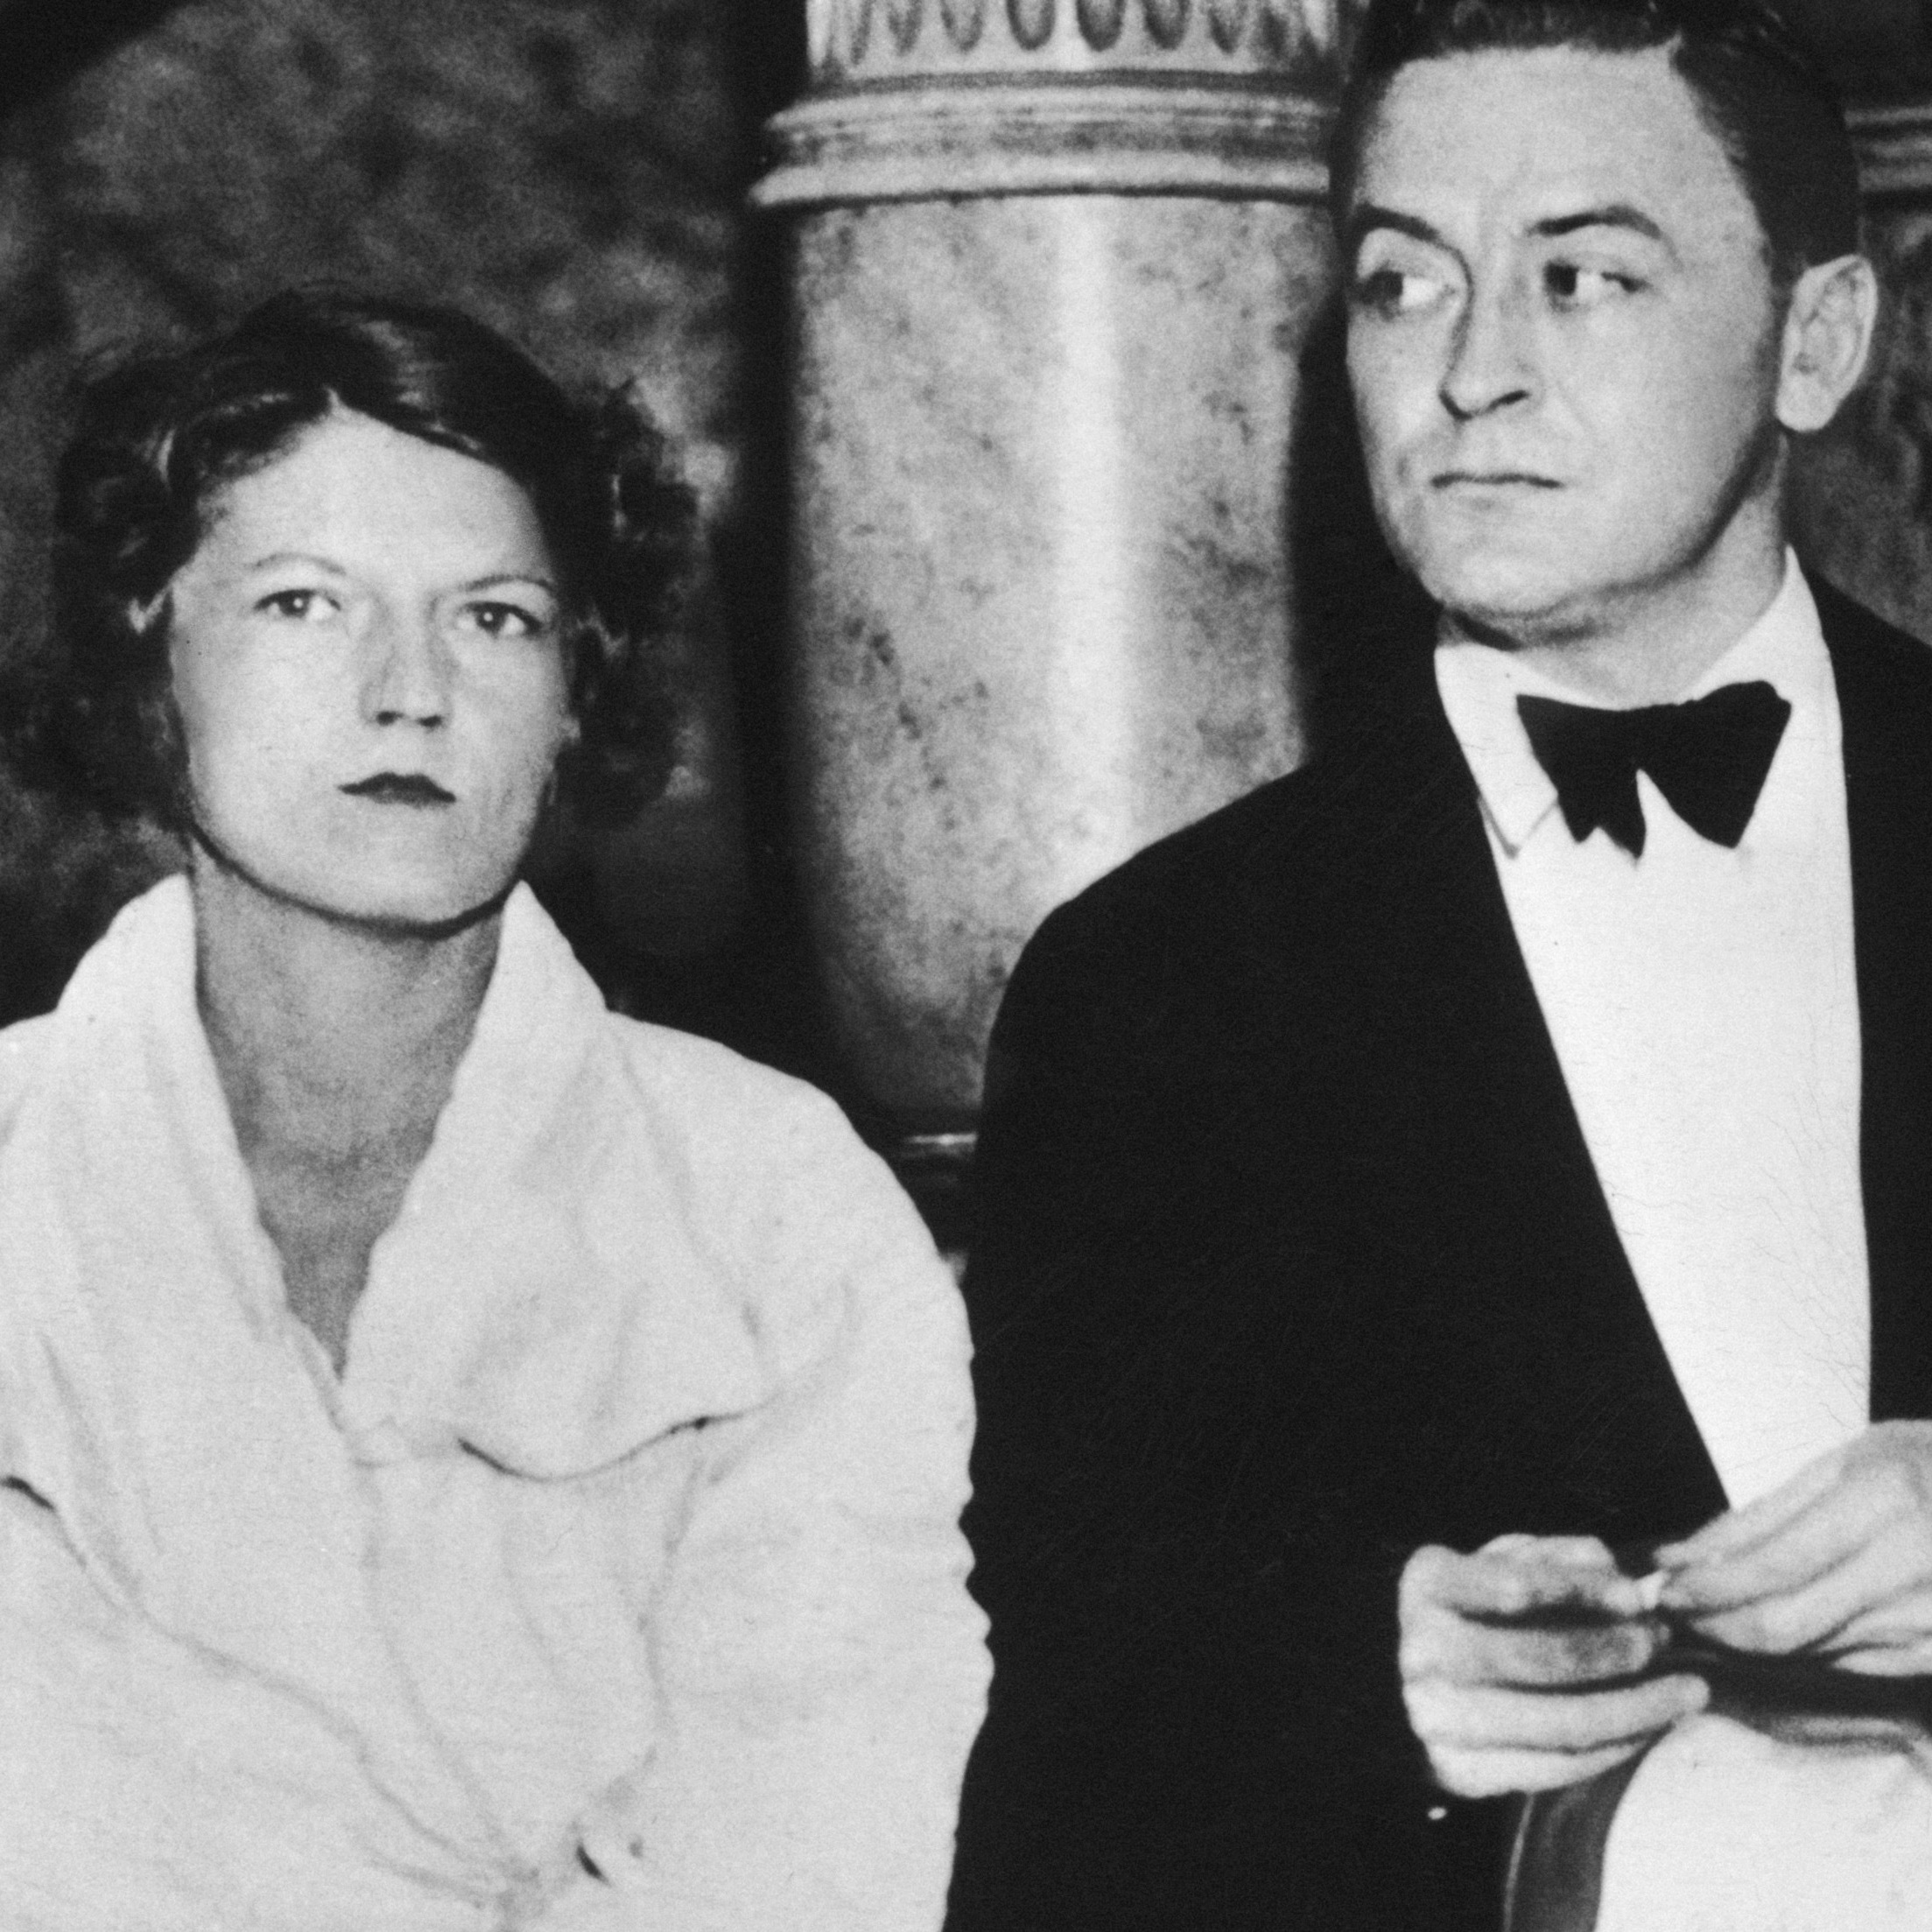 The Fitzgeralds attend a formal event, circa 1935.